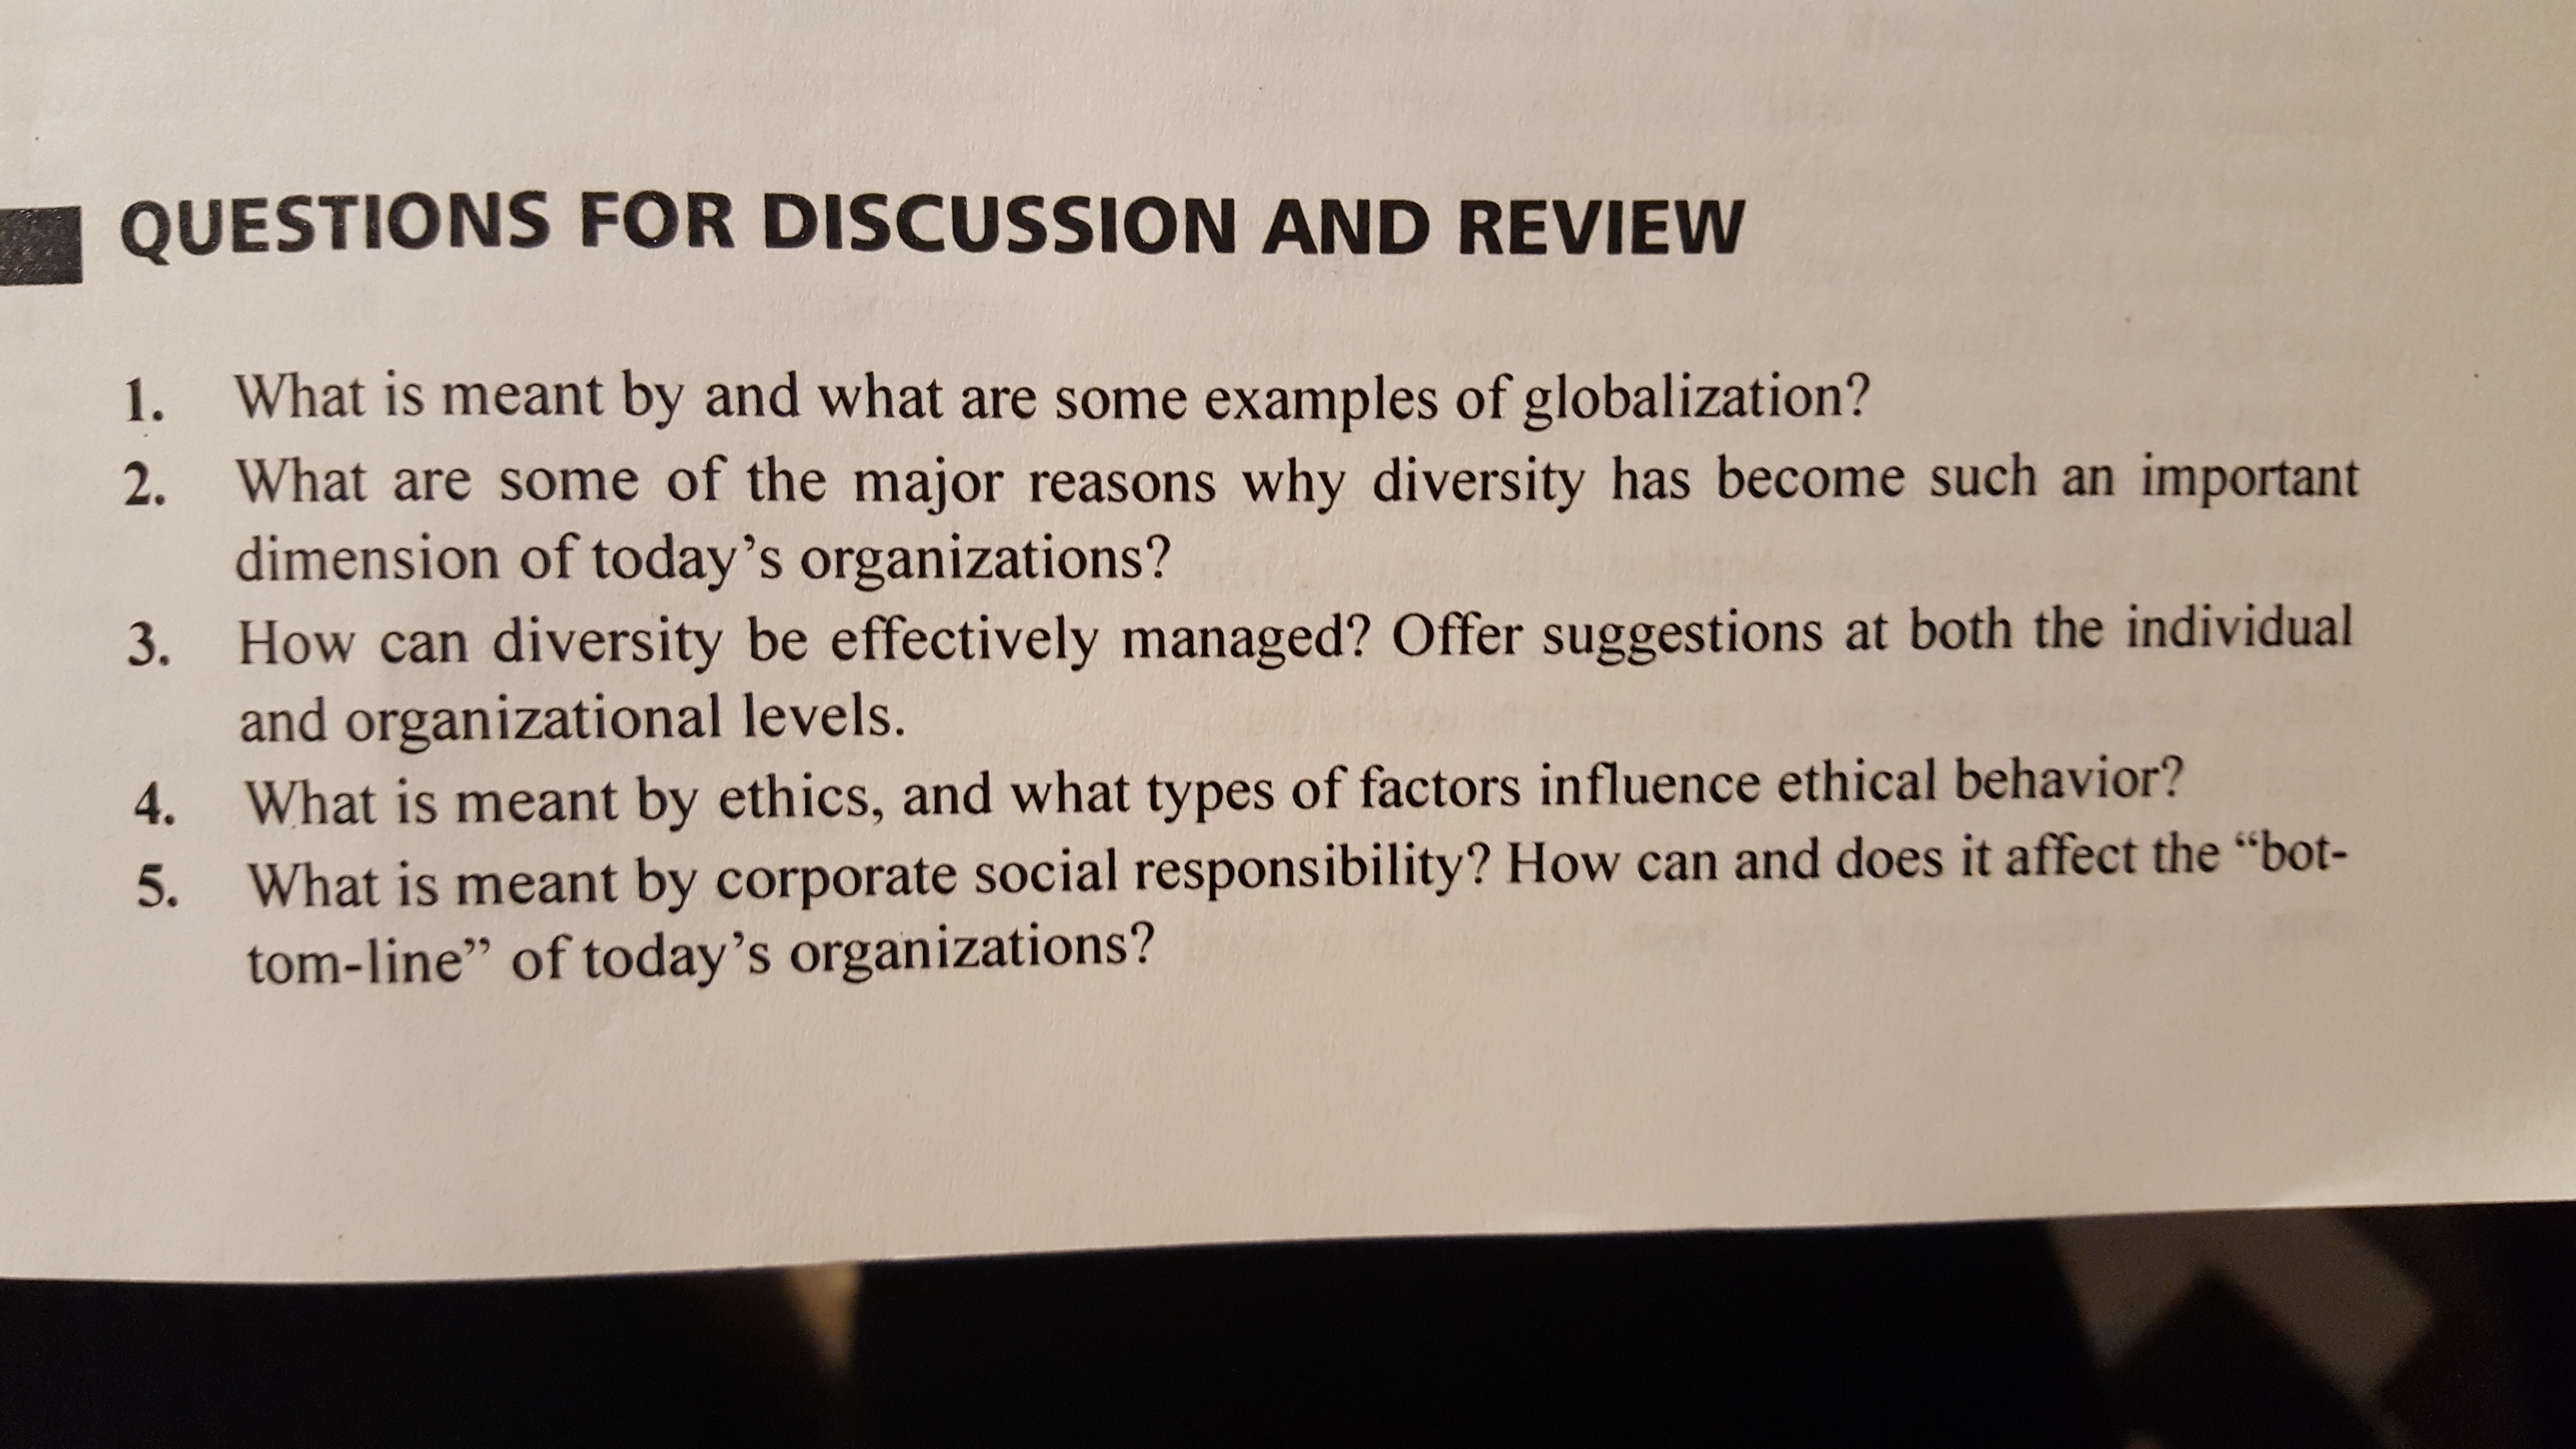 """QUESTIONS FOR DISCUSSION AND REVIEW 1. What is meant by and what are some examples of globalization? 2. What are some of the major reasons why diversity has become such an important dimension of today's organizations? How can diversity be effectively managed? Offer suggestions at both the individual and organizational levels. What is meant by ethics, and what types of factors influence ethical behavior? What is meant by corporate social responsibility? How can and does it affect the """"bot- tom-line"""" of today's organizations? 3. 4. 5."""